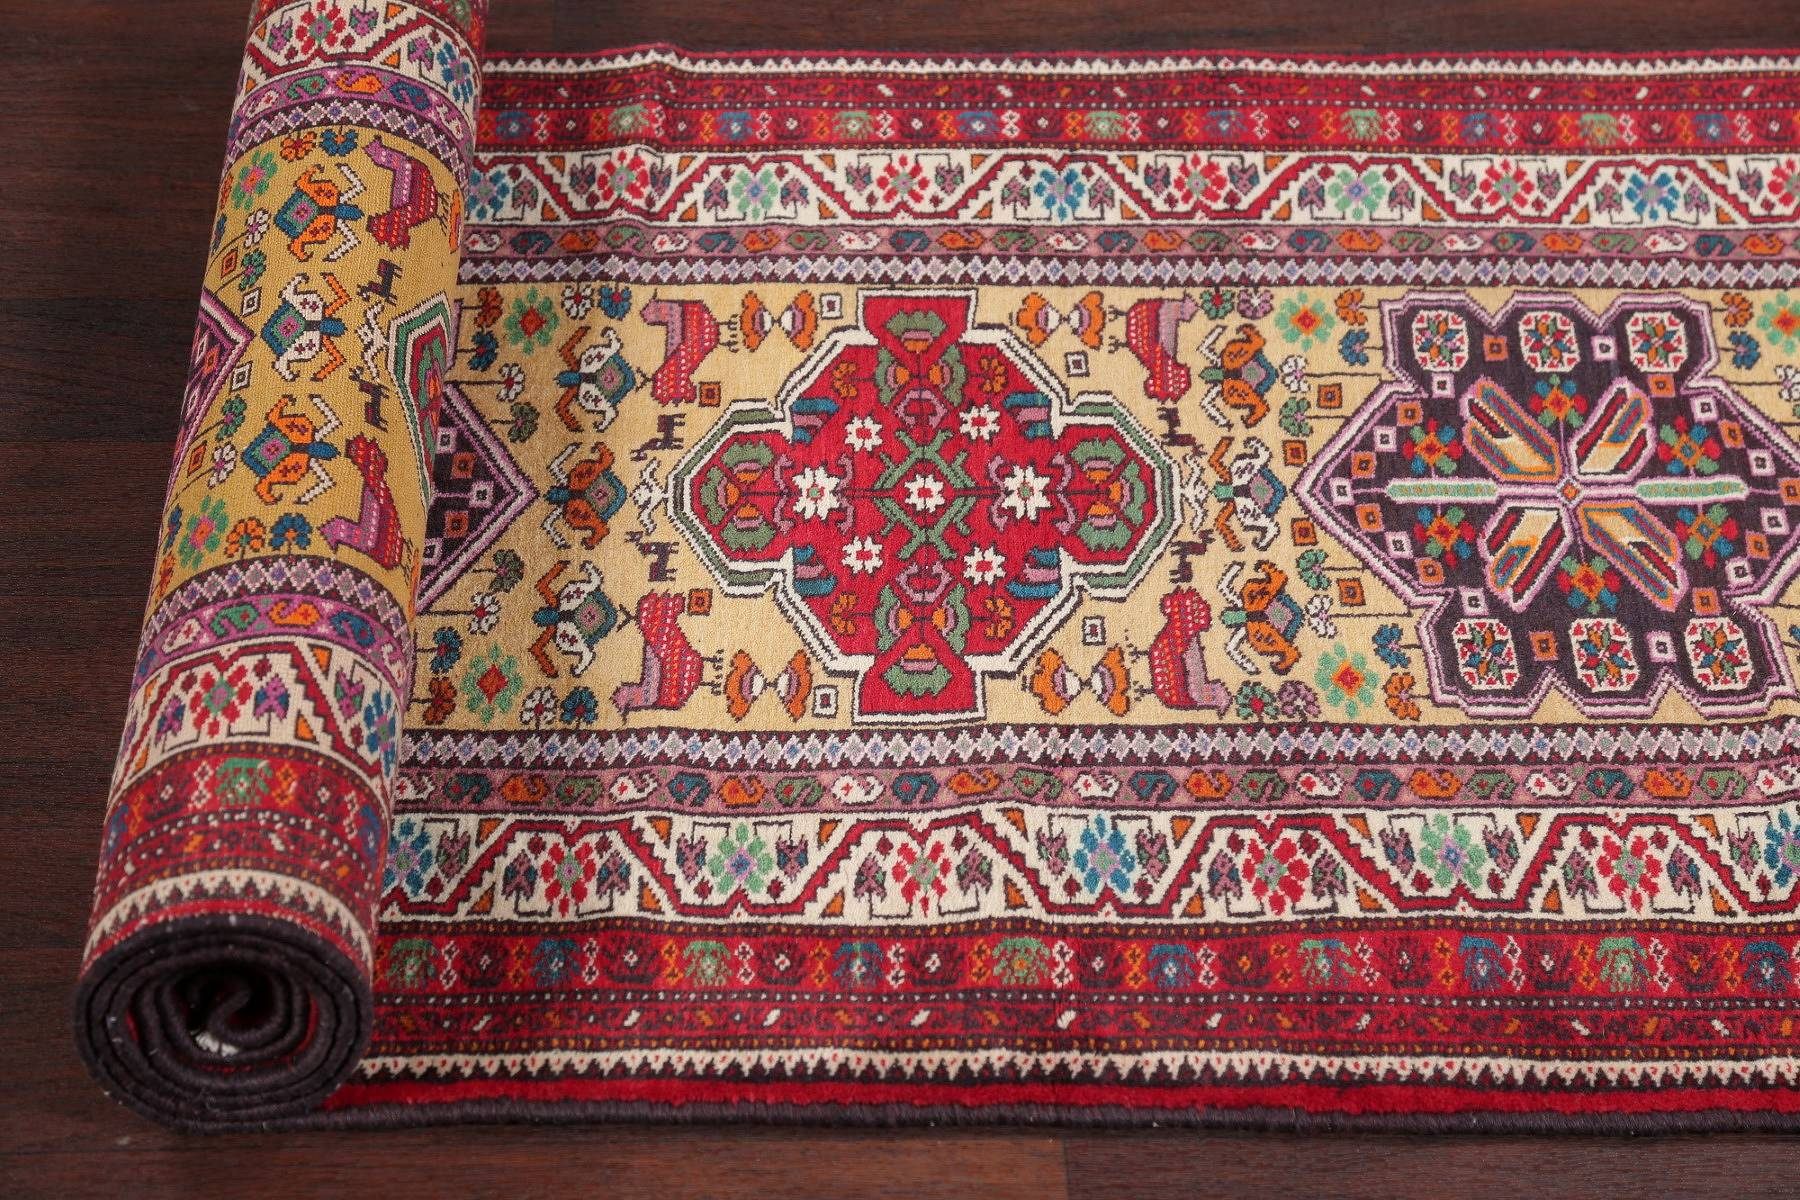 Geometric Tribal Turkoman Persian Hand-Knotted Runner Rug Wool 3x13